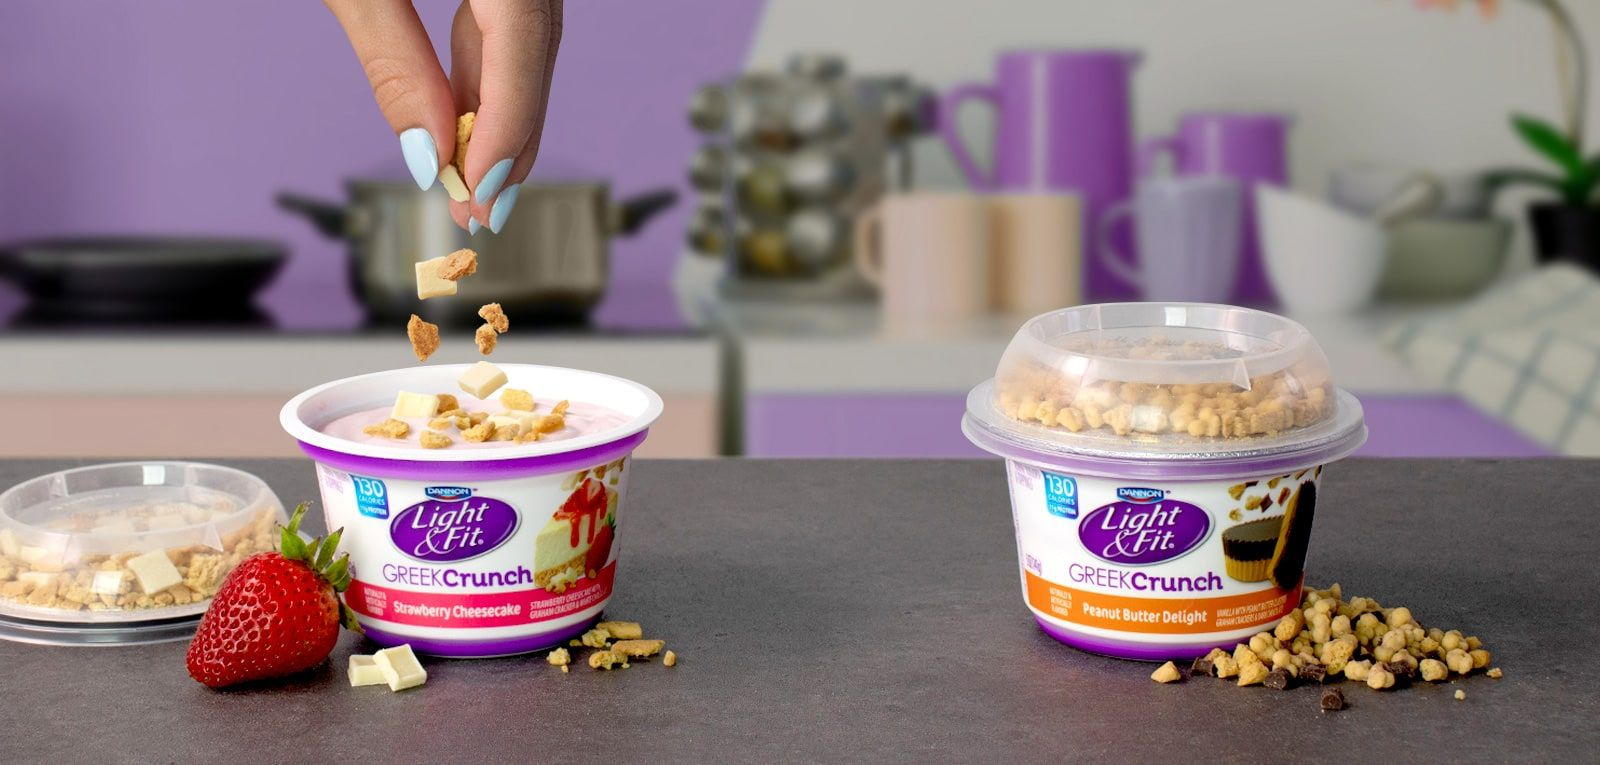 Dannon light fit yogurt with images snack smoothie